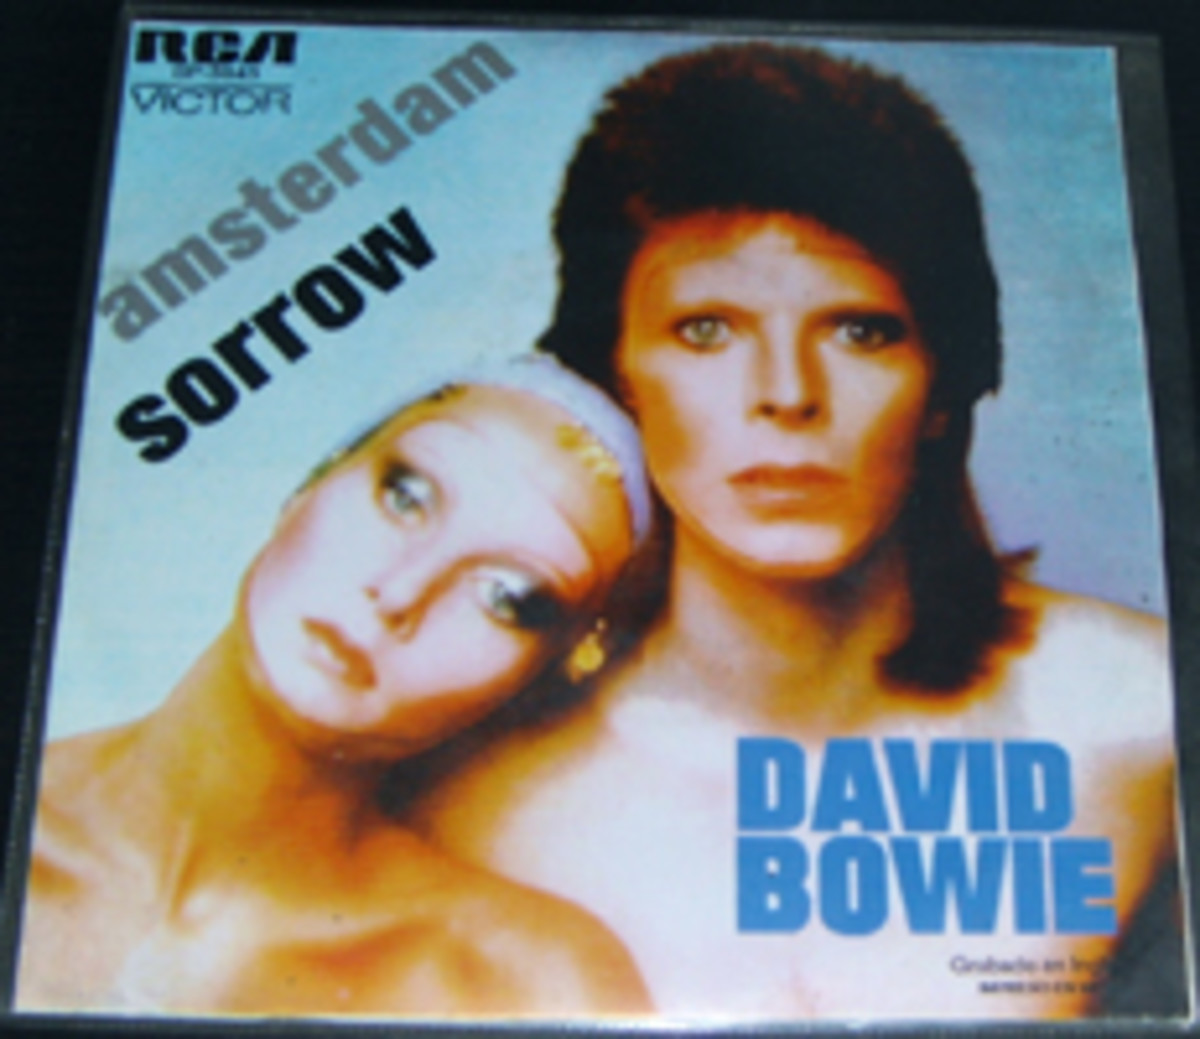 David Bowie Amsterdam Sorrow picture sleeve